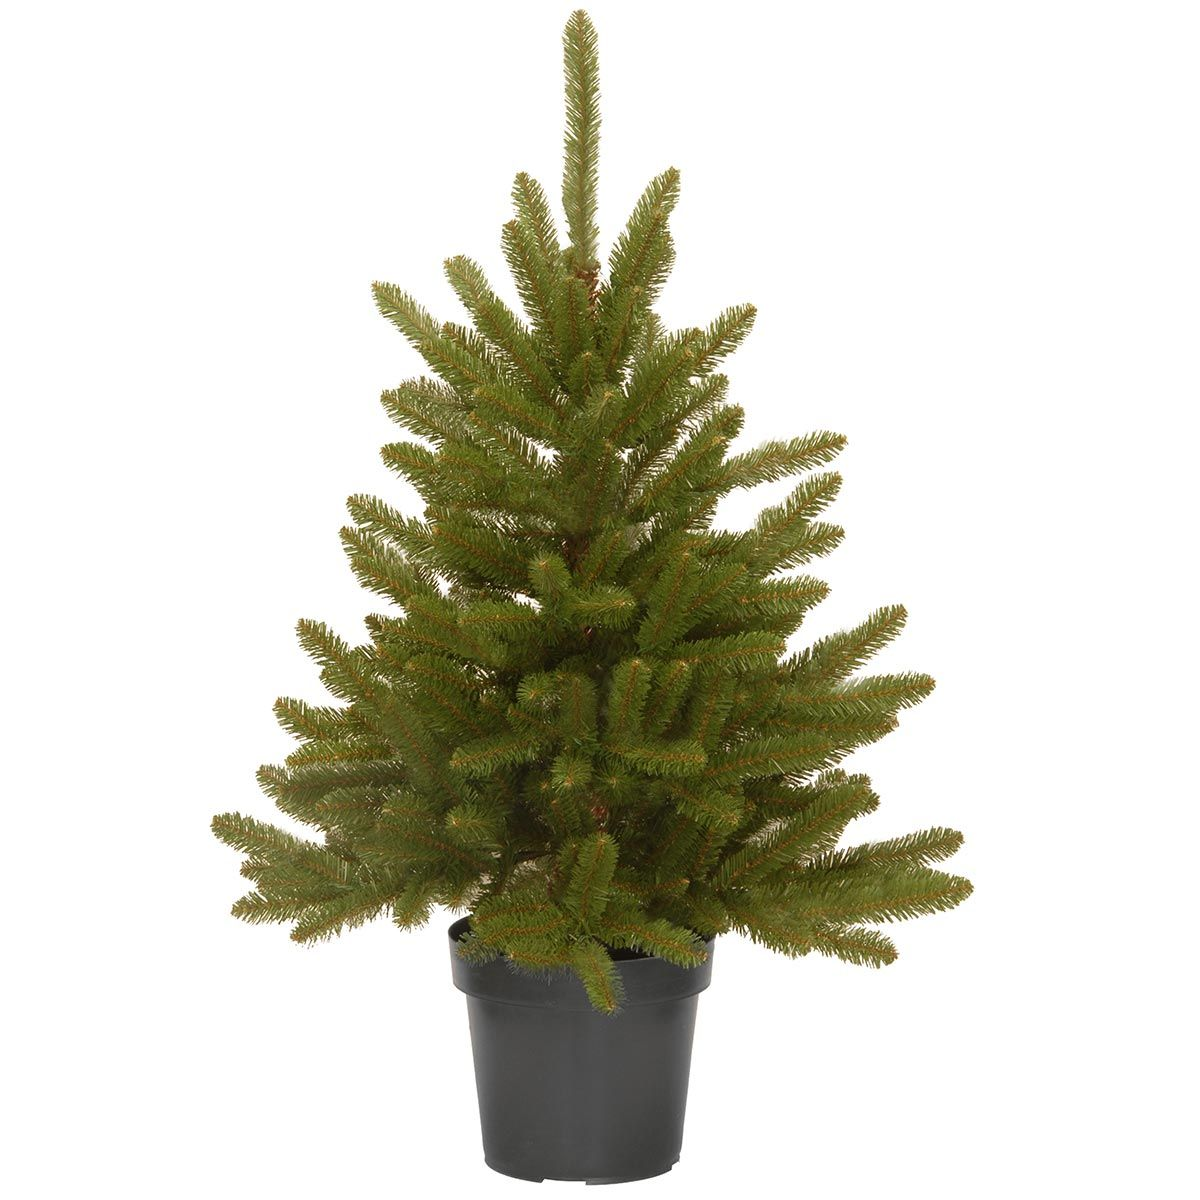 3ft kensington potted artificial christmas tree - Potted Artificial Christmas Trees